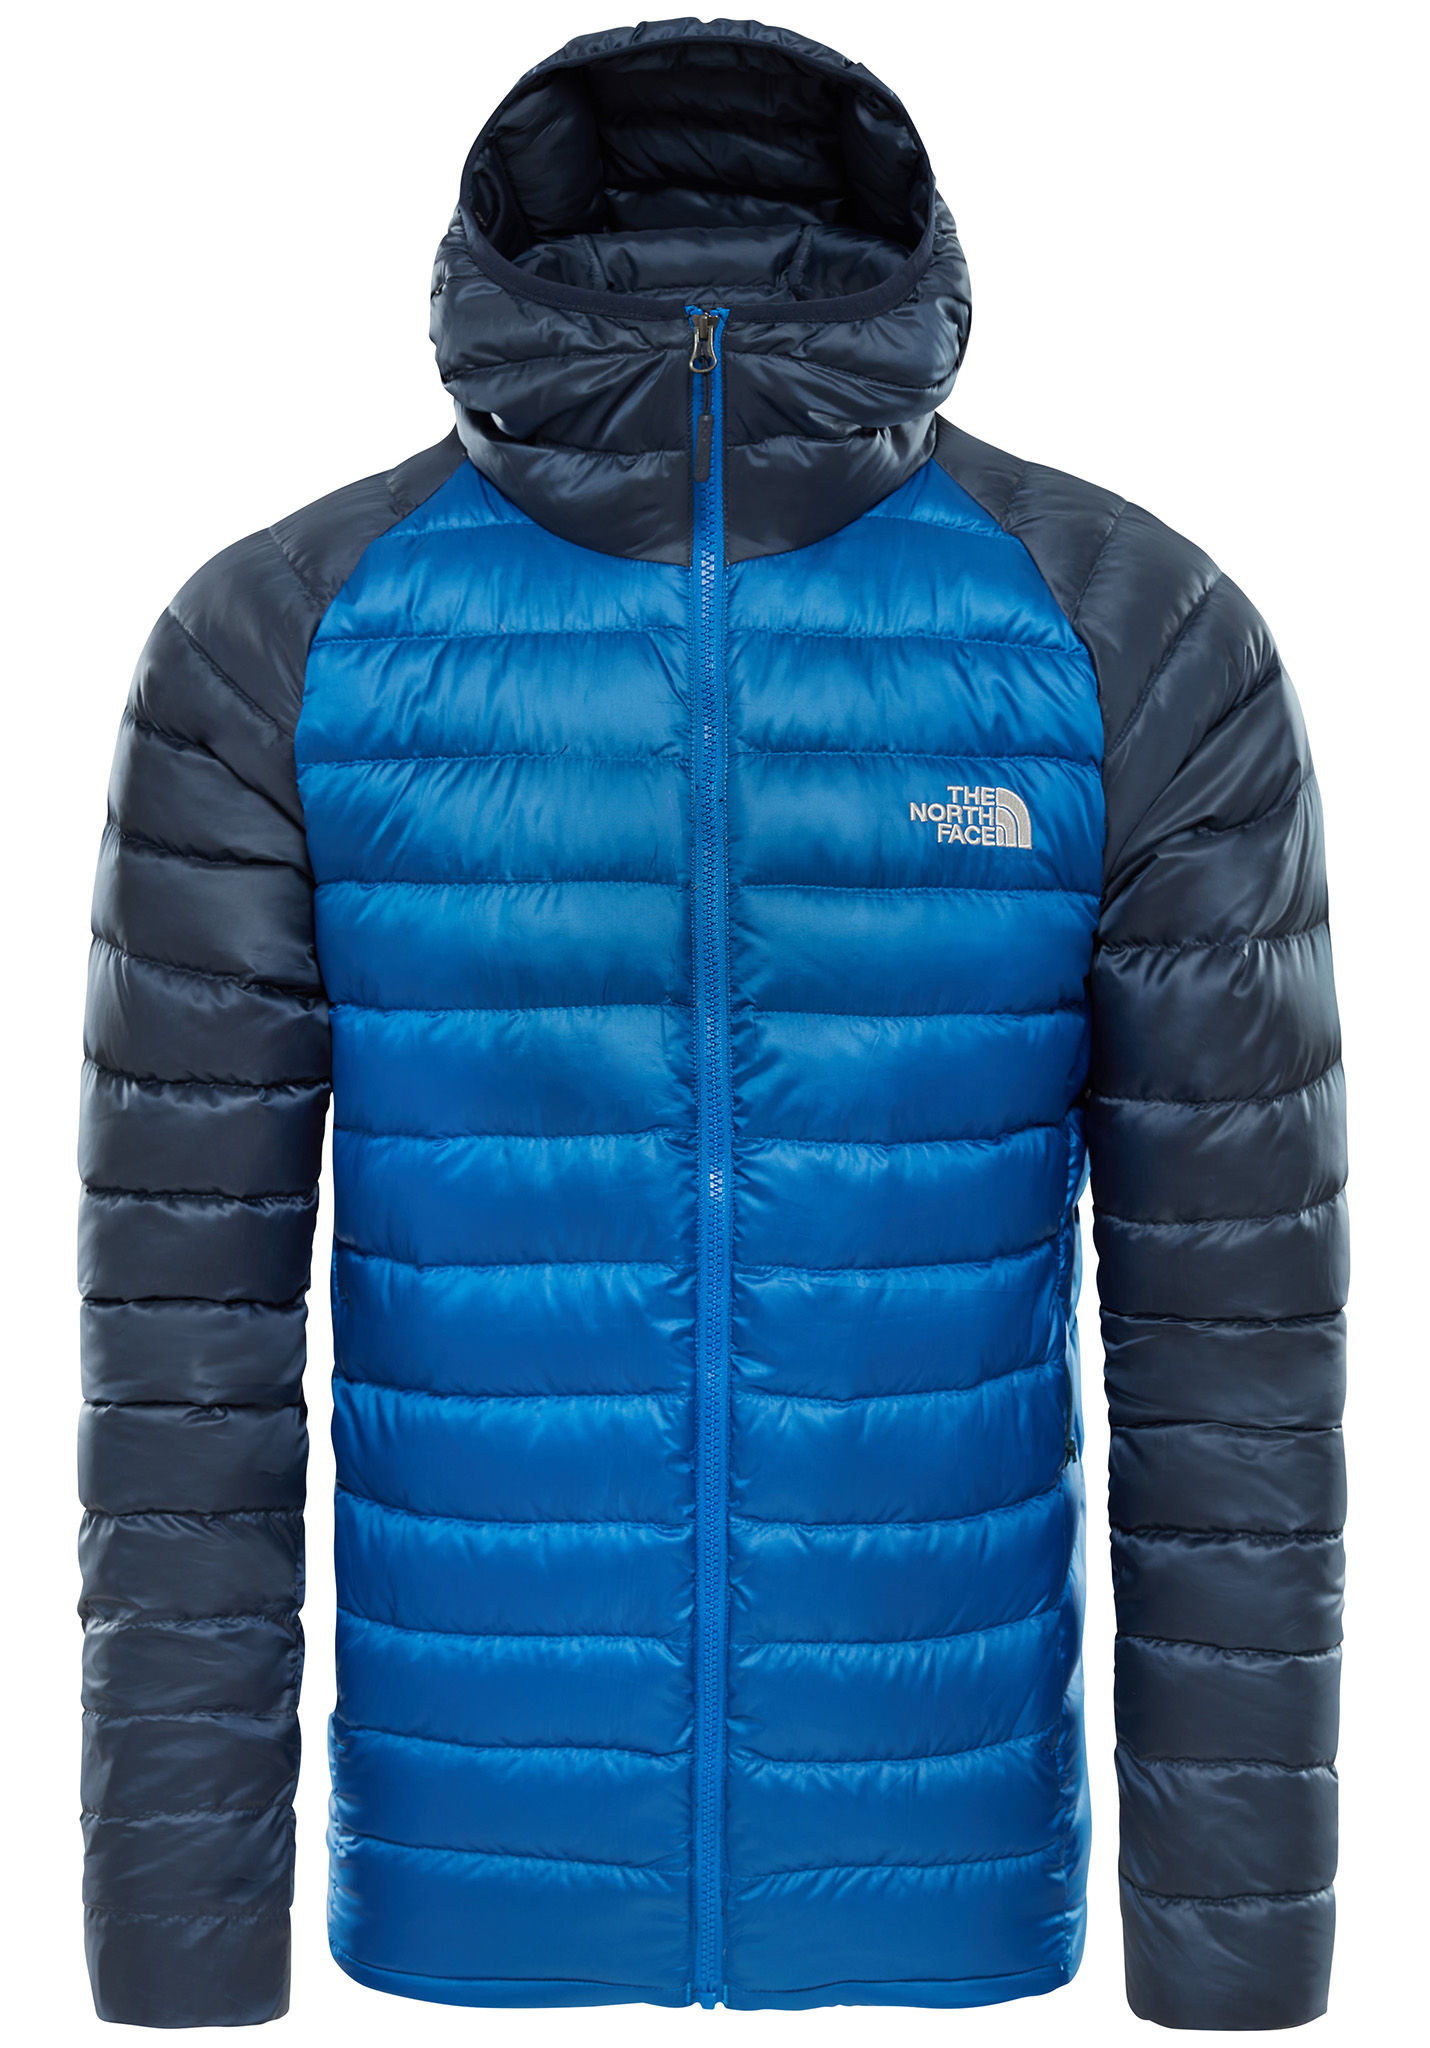 THE NORTH FACE Trevail Giacca outdoor per Uomo Rosso